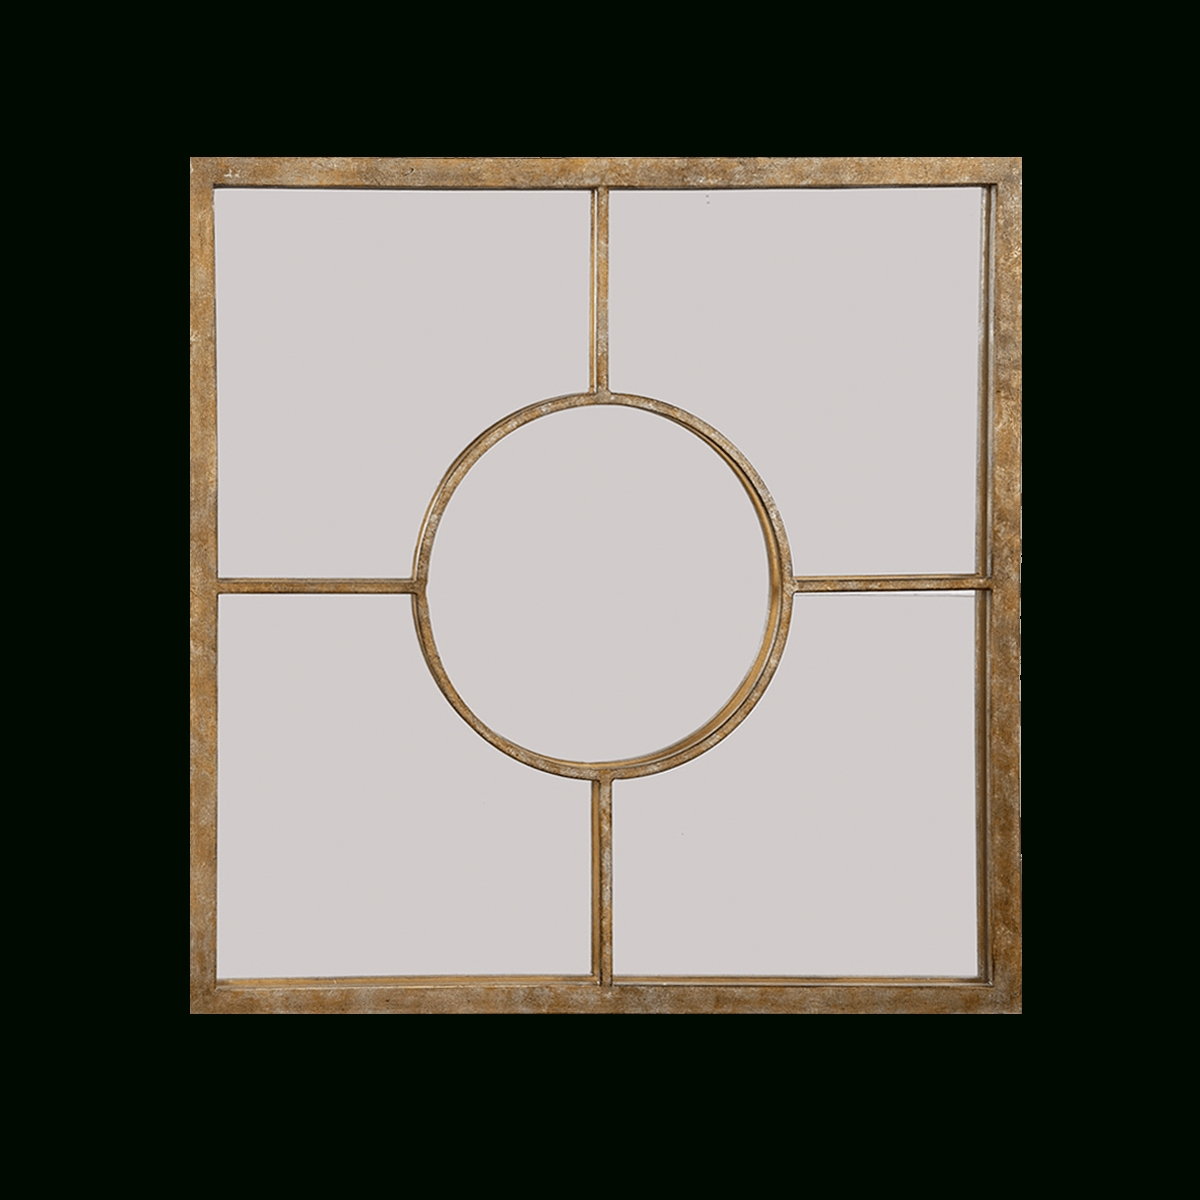 James Mottled Gold Square Decorative Wall Mirrorold World Design Pertaining To Square Gold Mirror (Image 8 of 20)